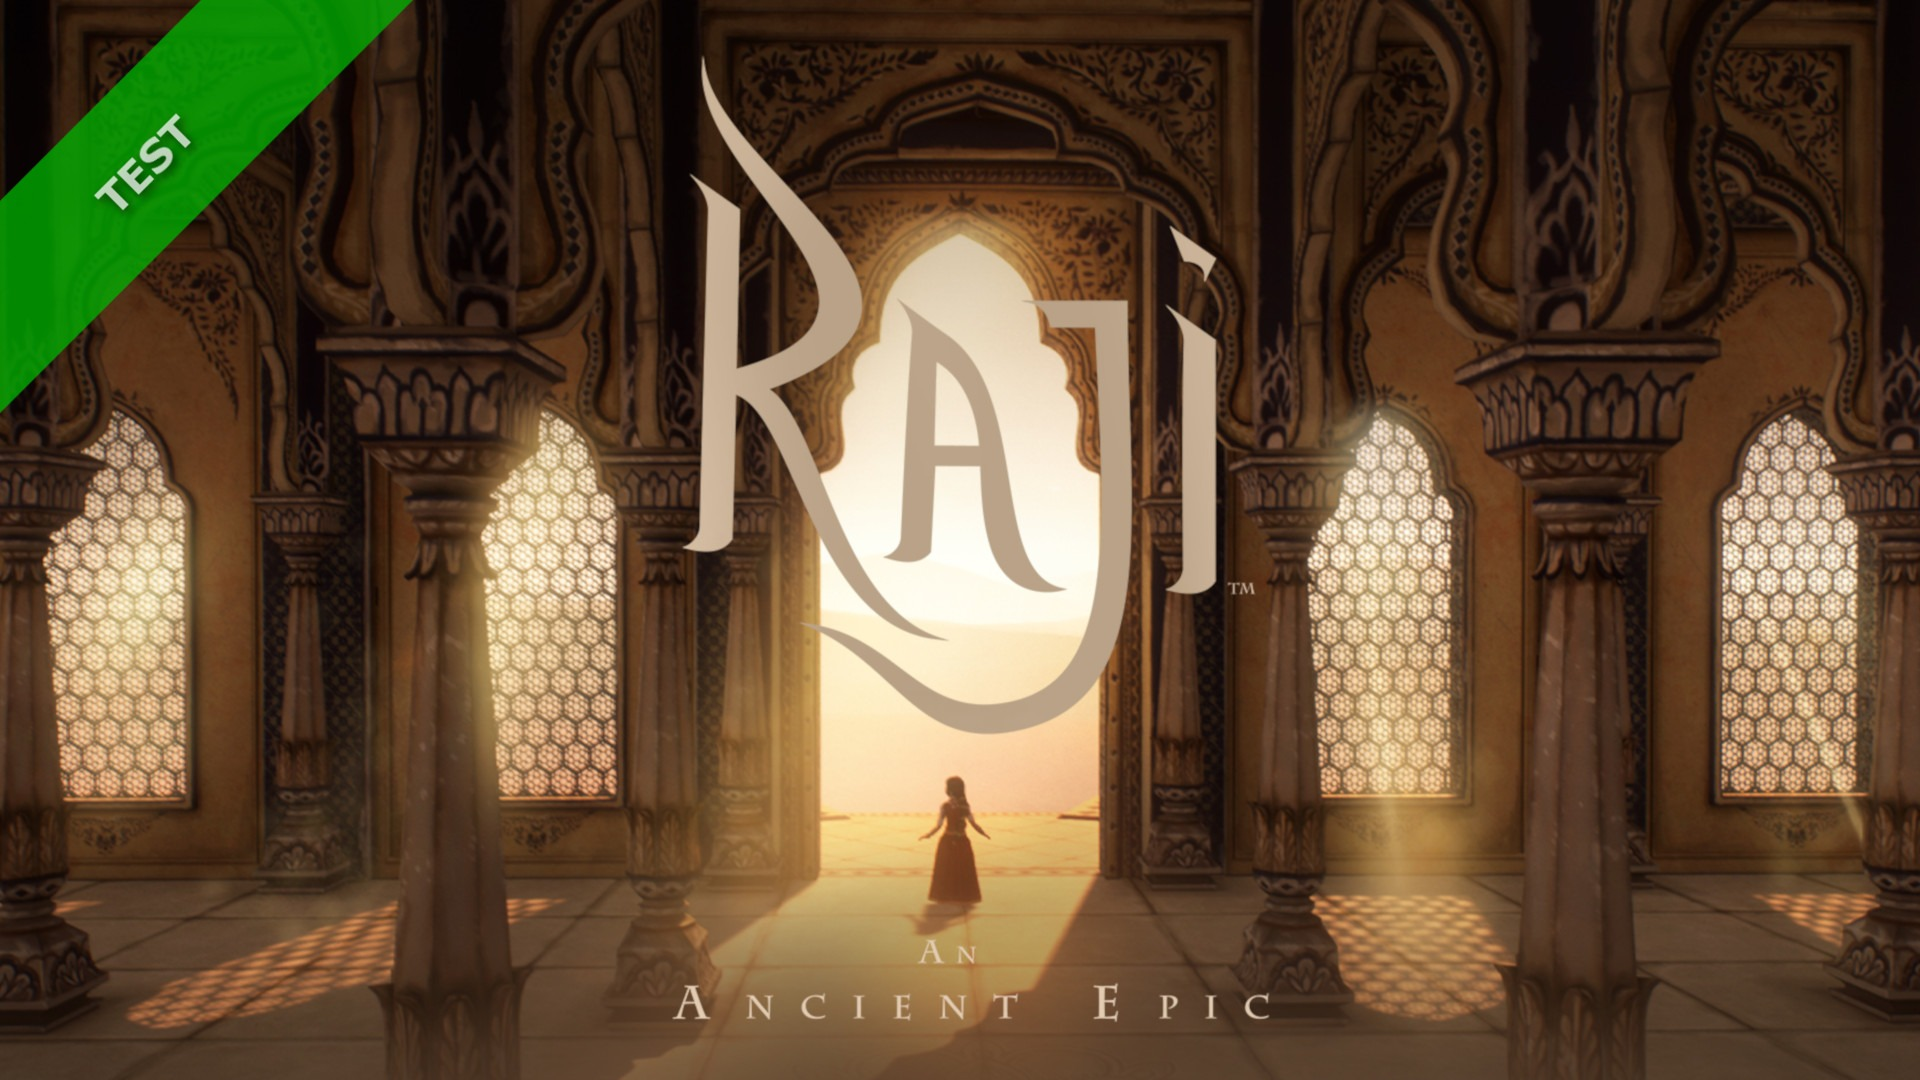 Raji : An Ancient Epic